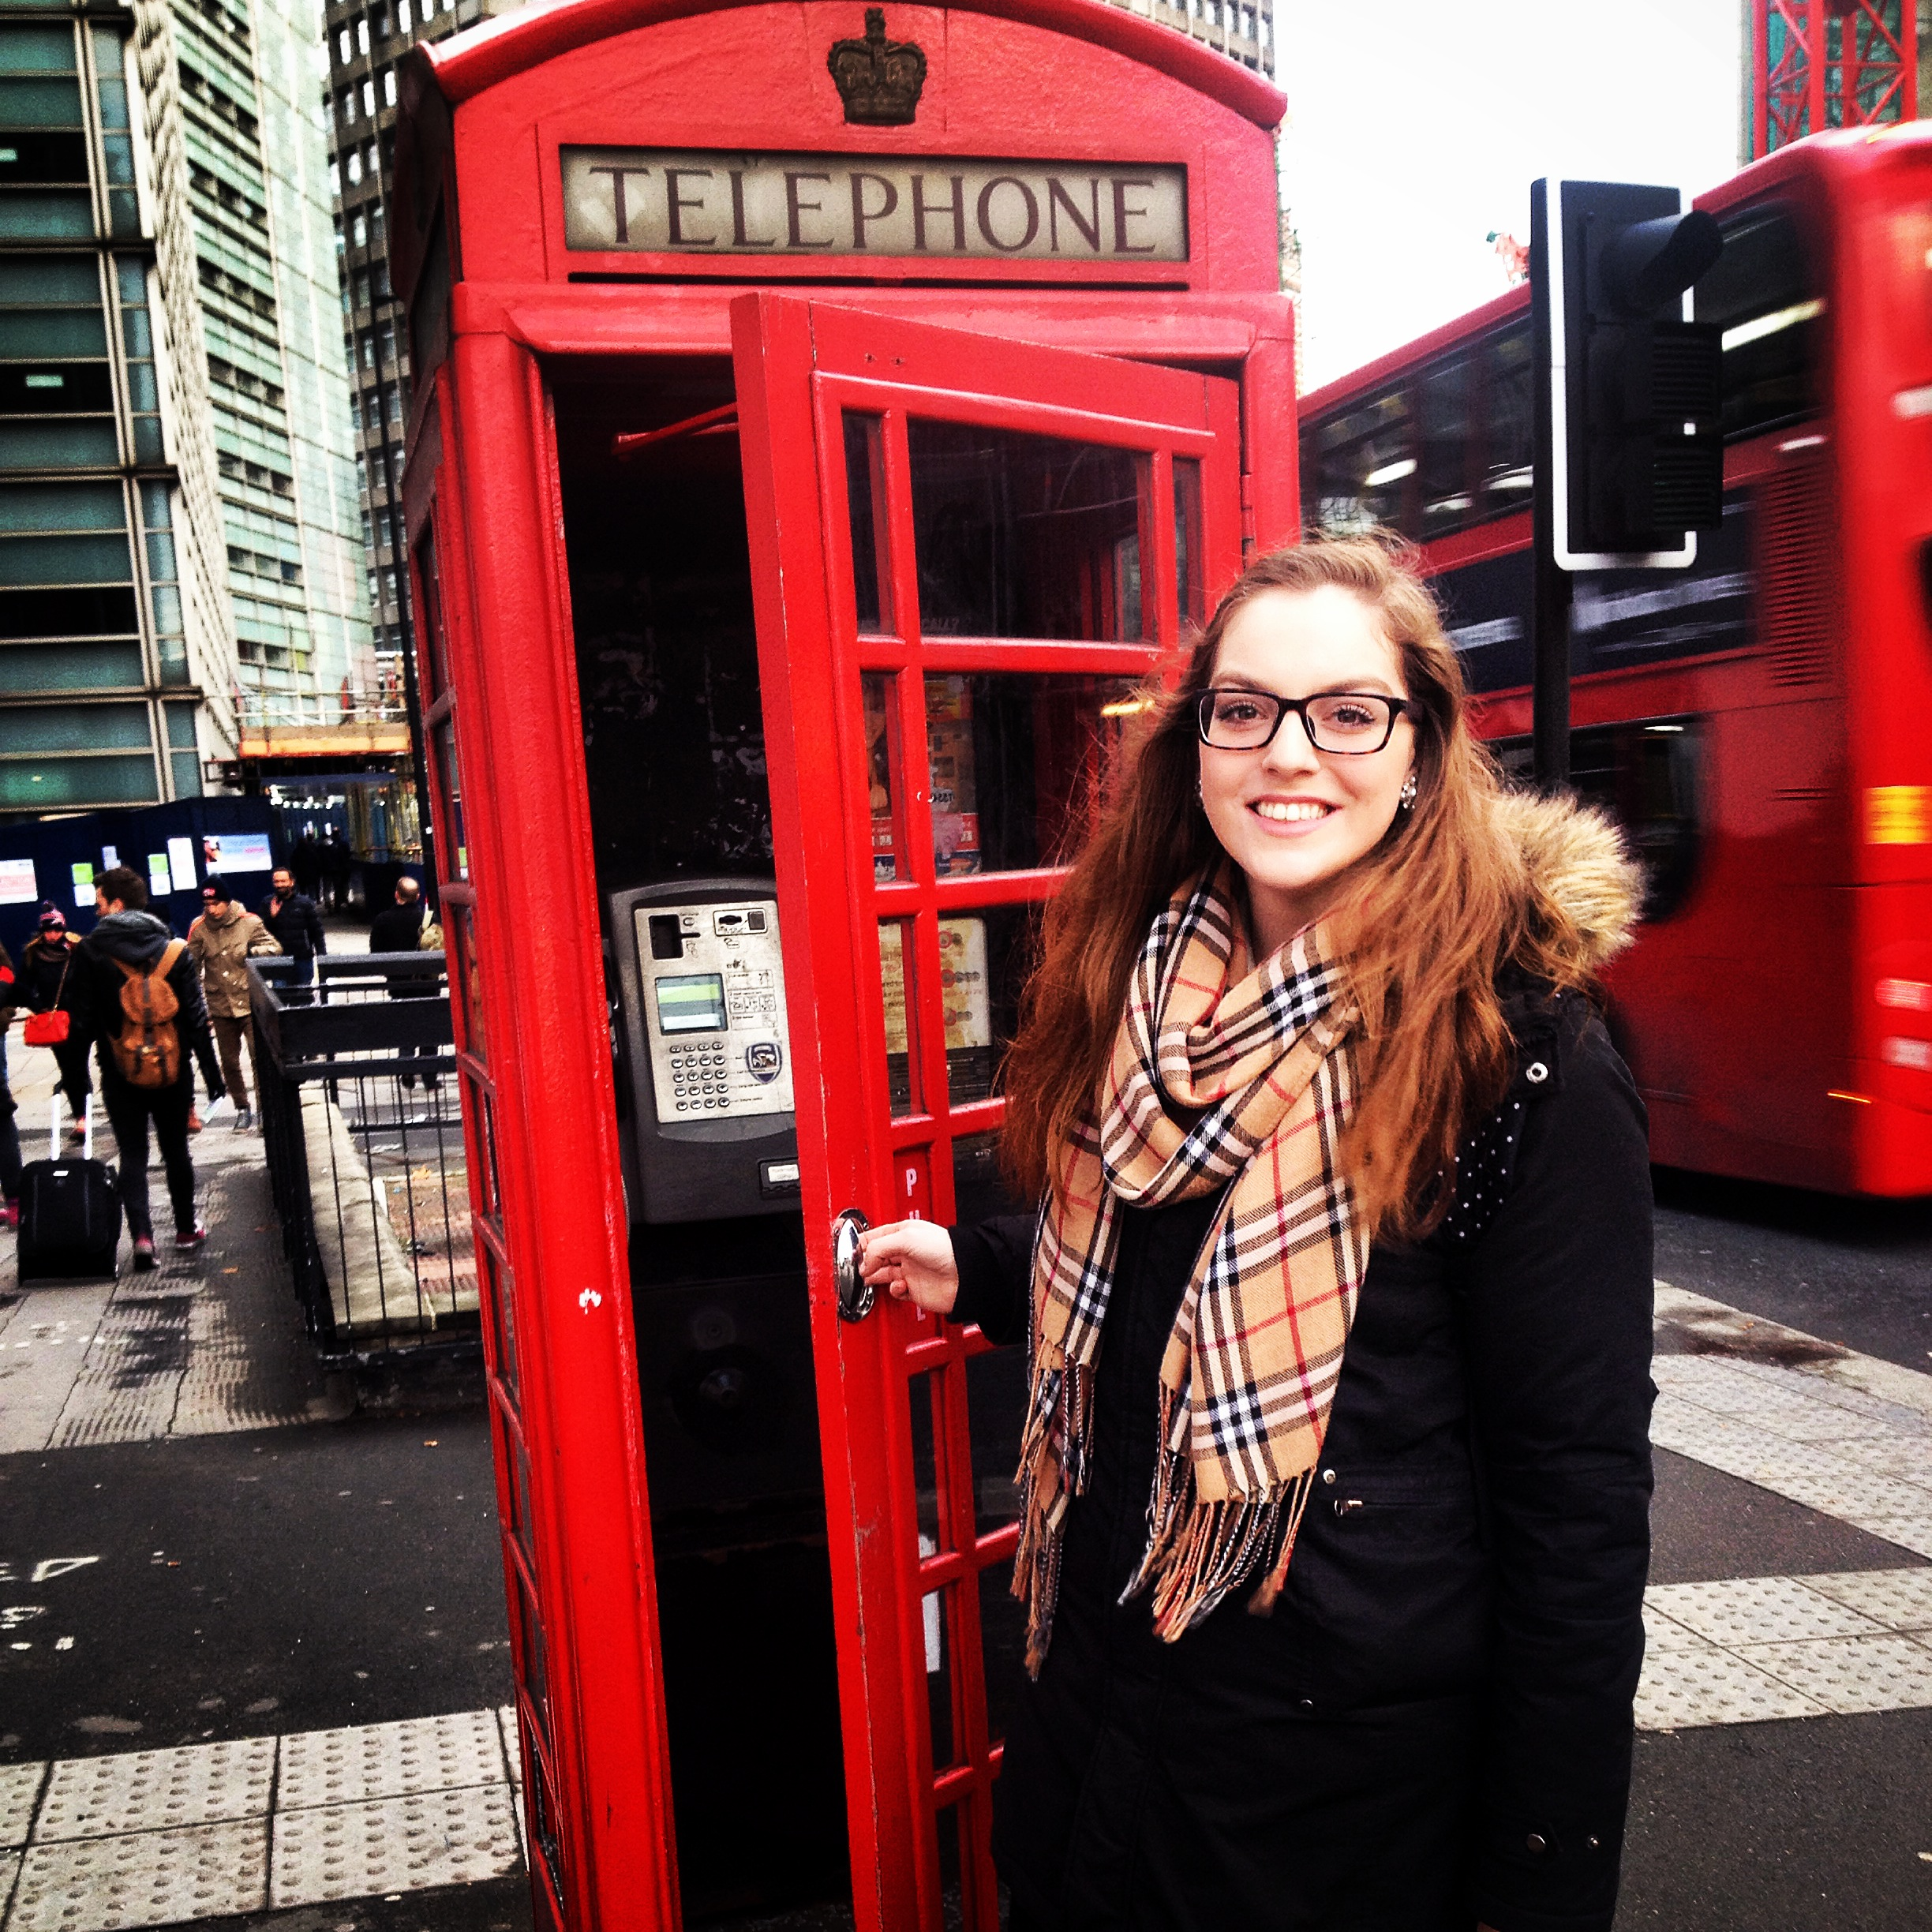 In Front of a Phone Booth | Tall Girl Meets World